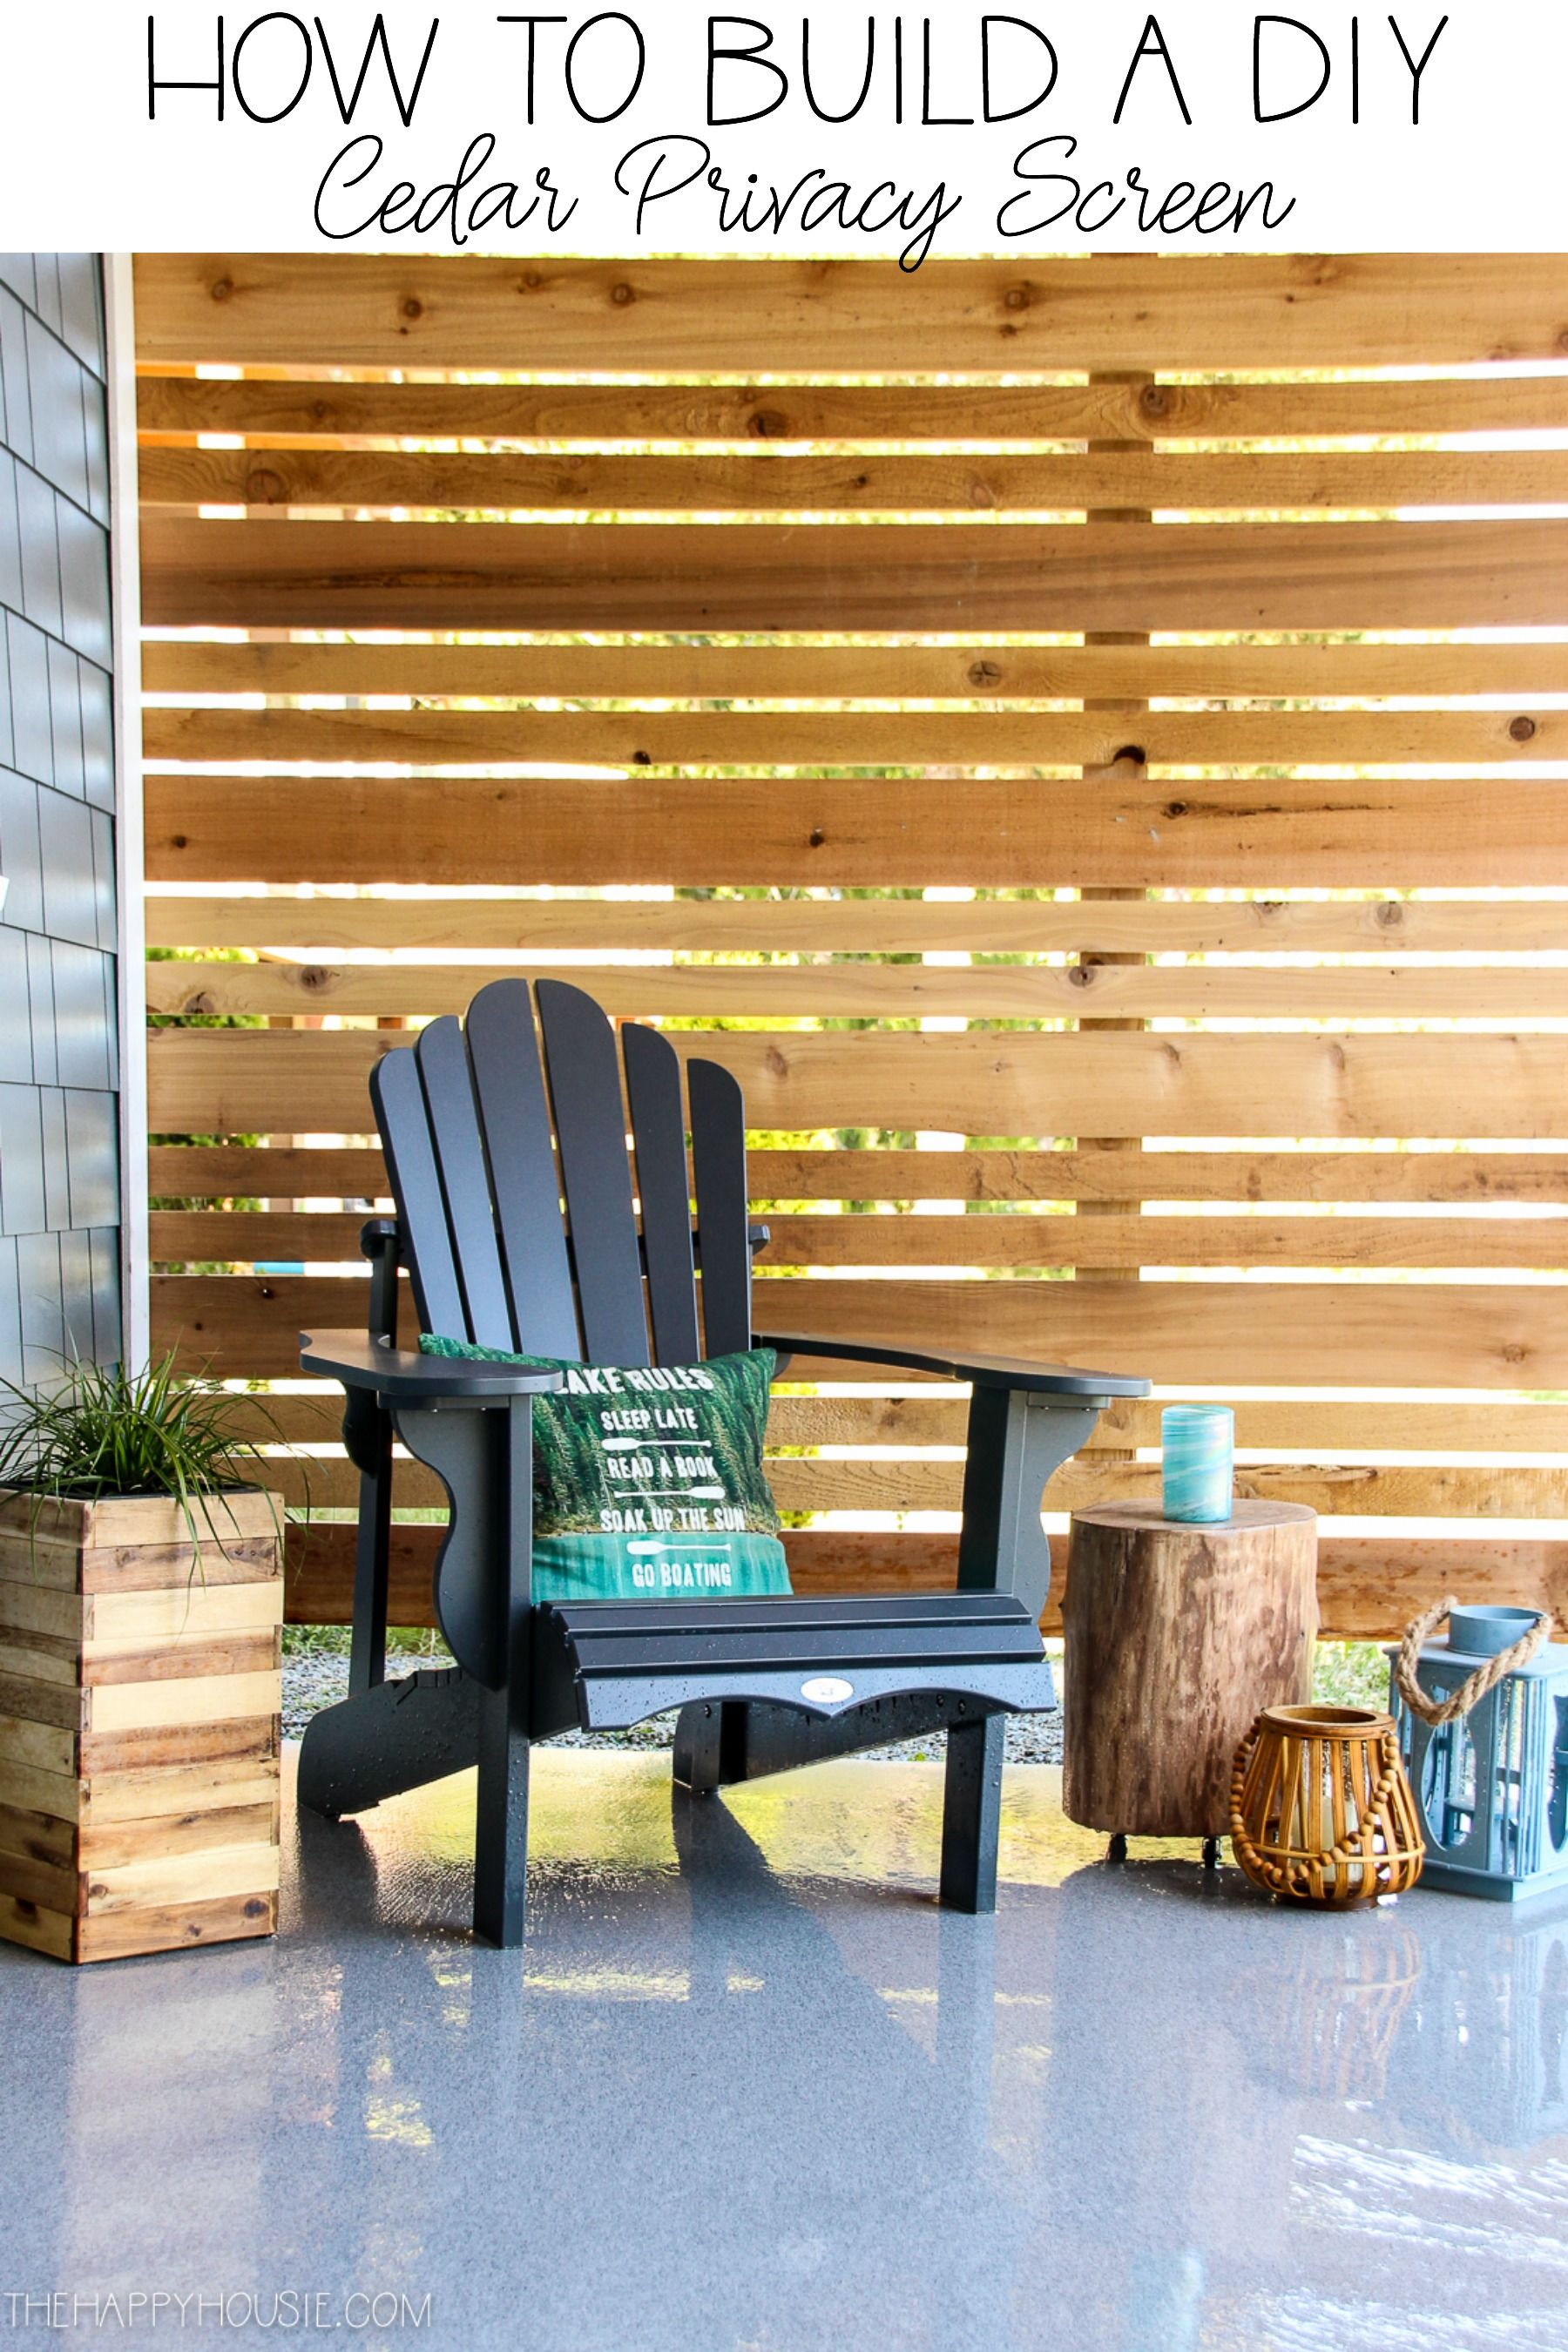 How to Build a DIY Cedar Privacy Screen | The Happy Housie